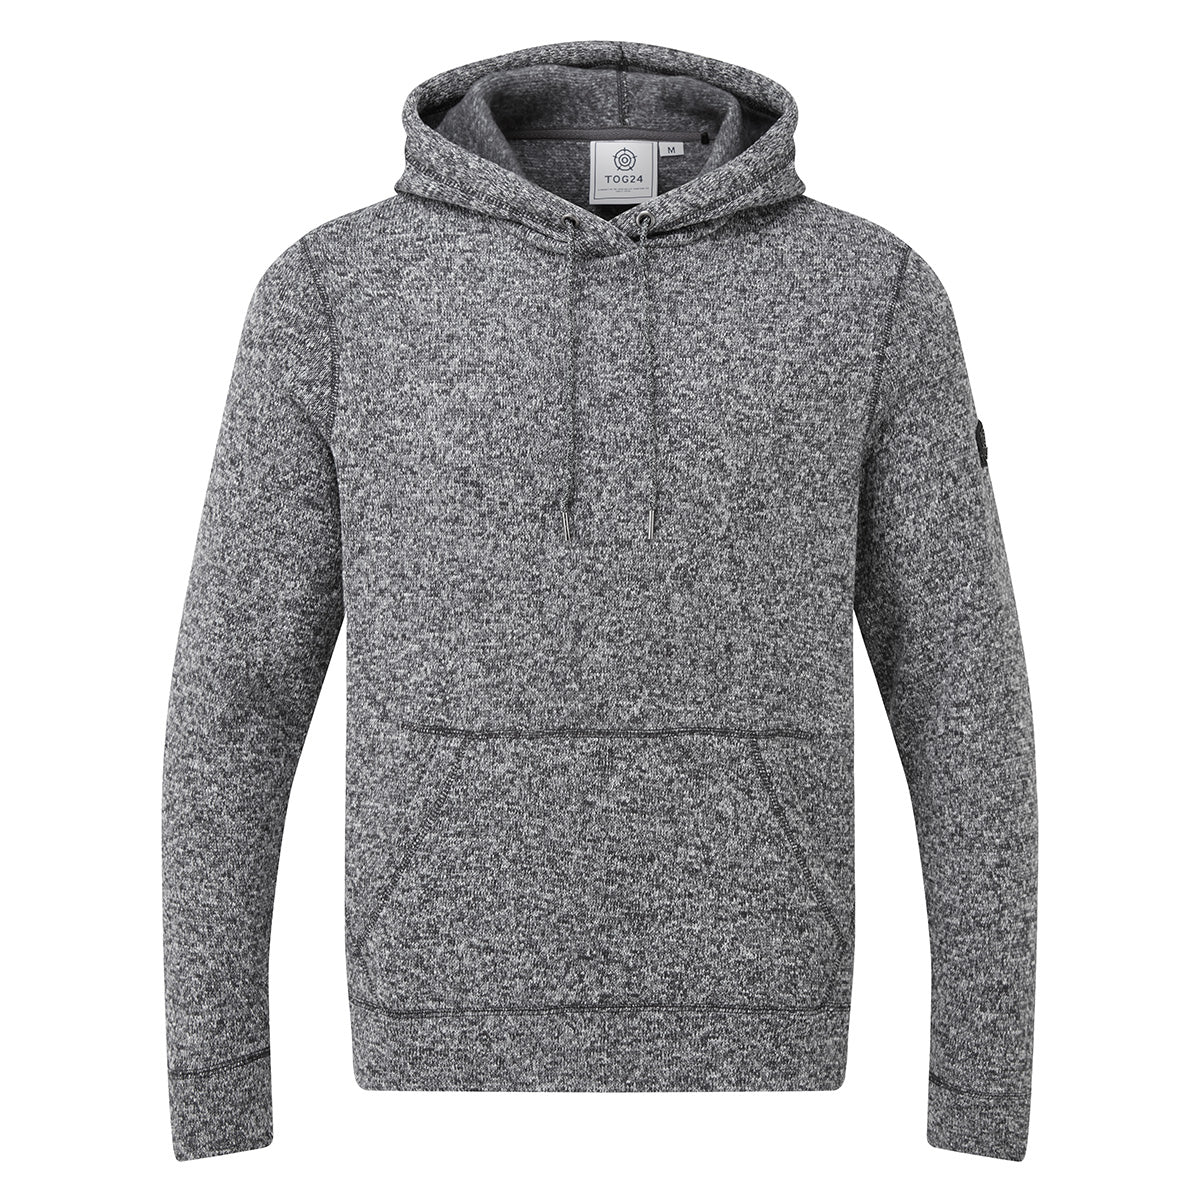 Marsden Mens Knitlook Fleece Hoody - Dark Grey Marl image 4